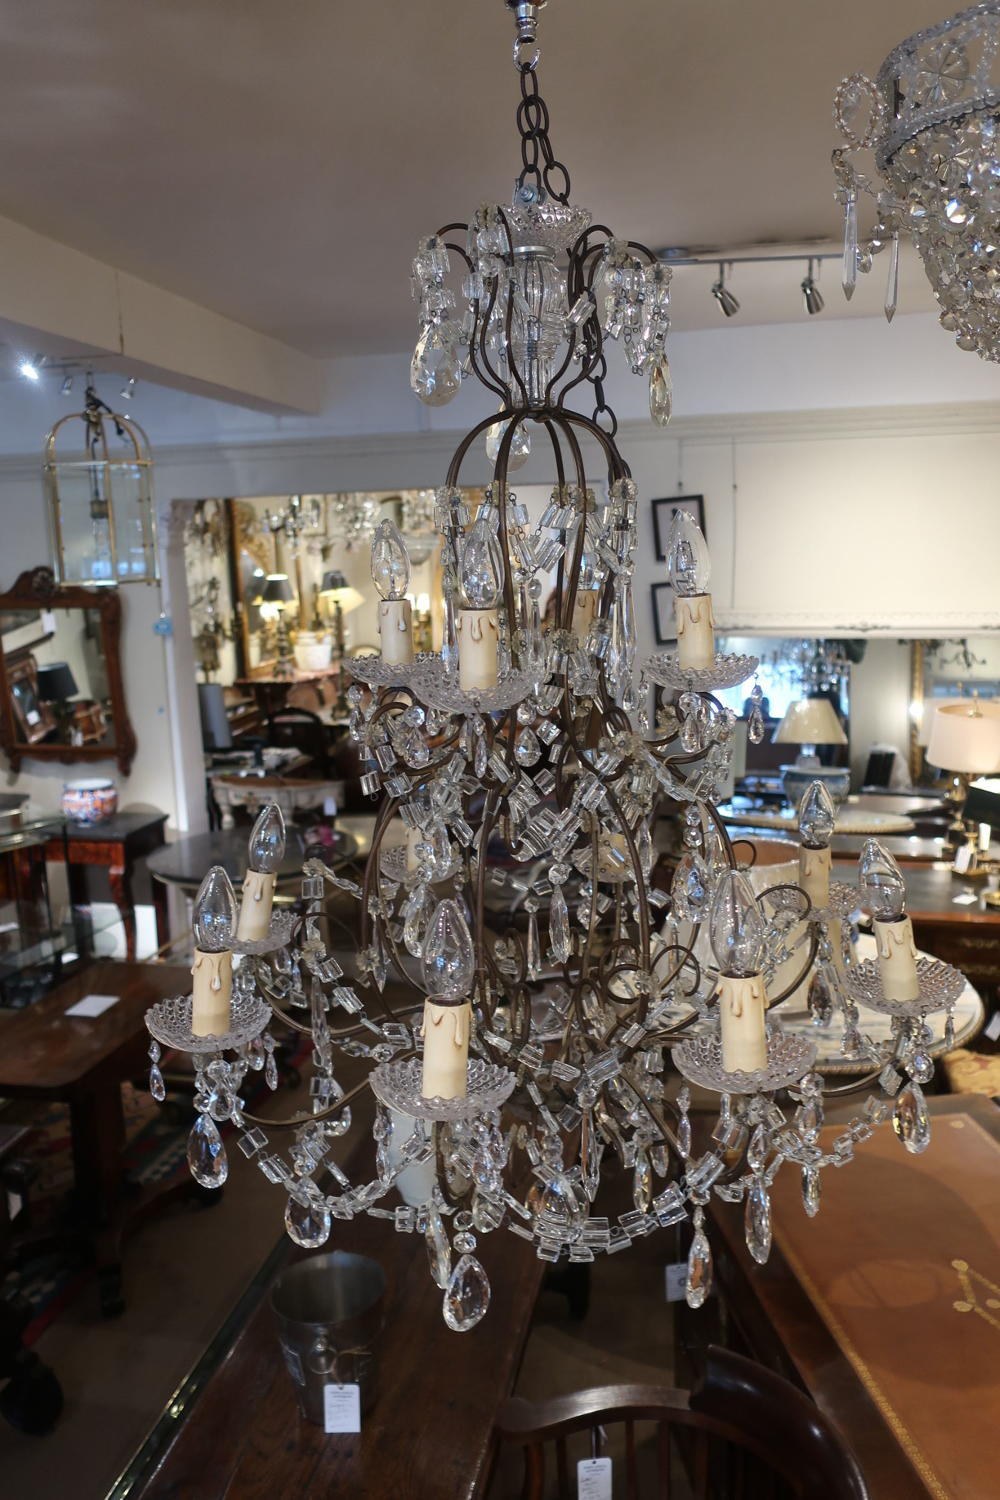 Large 12 branch chandelier